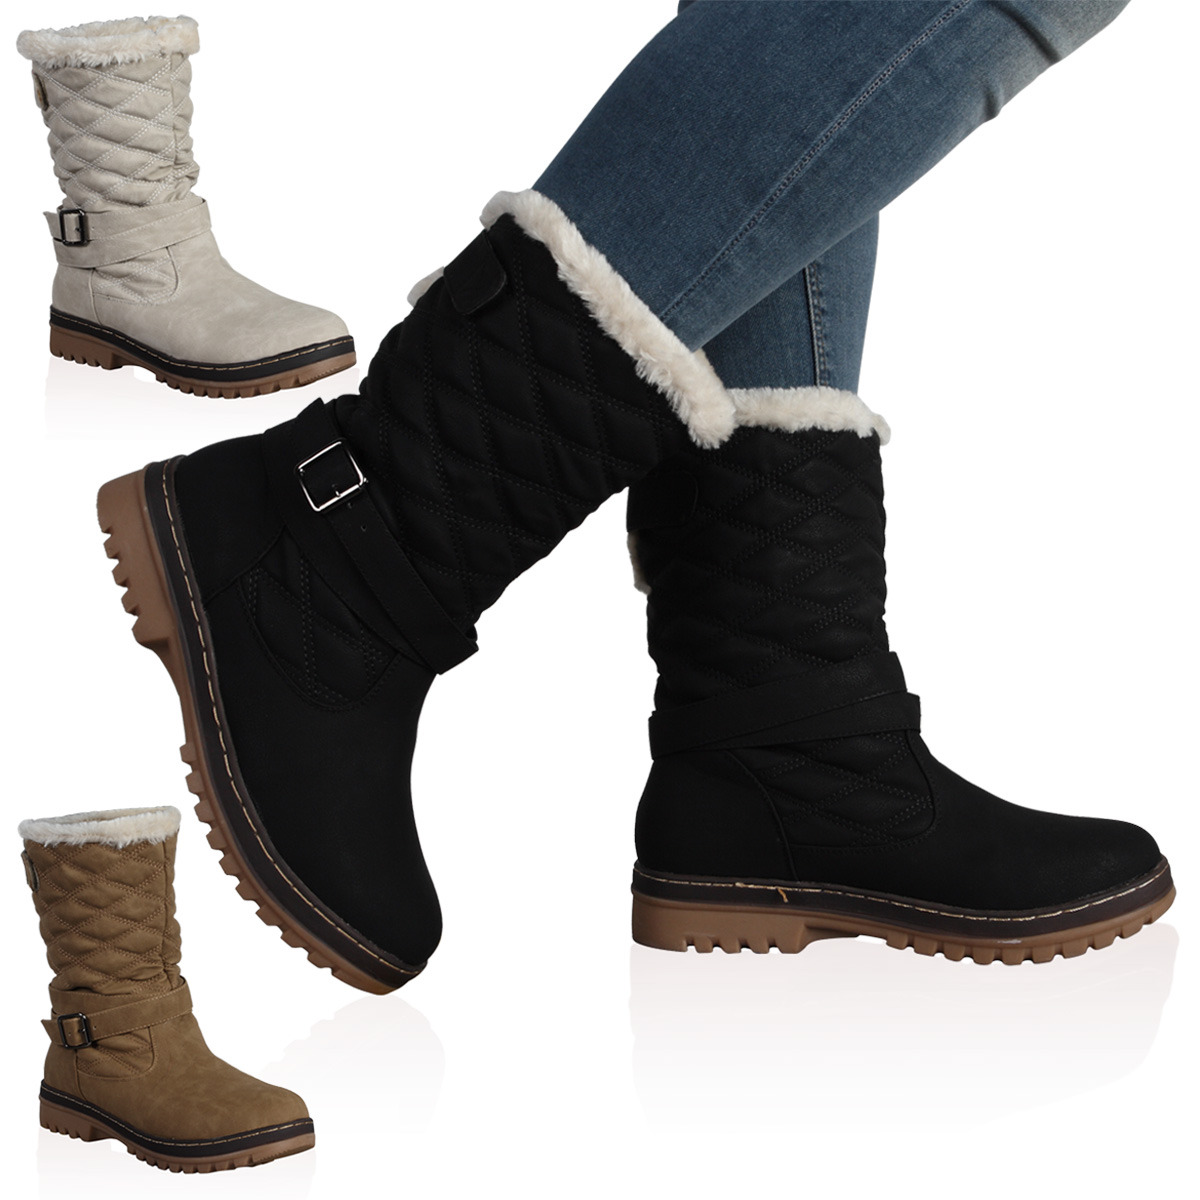 Waterproof Snow Boots For Women On Sale Boot Yc